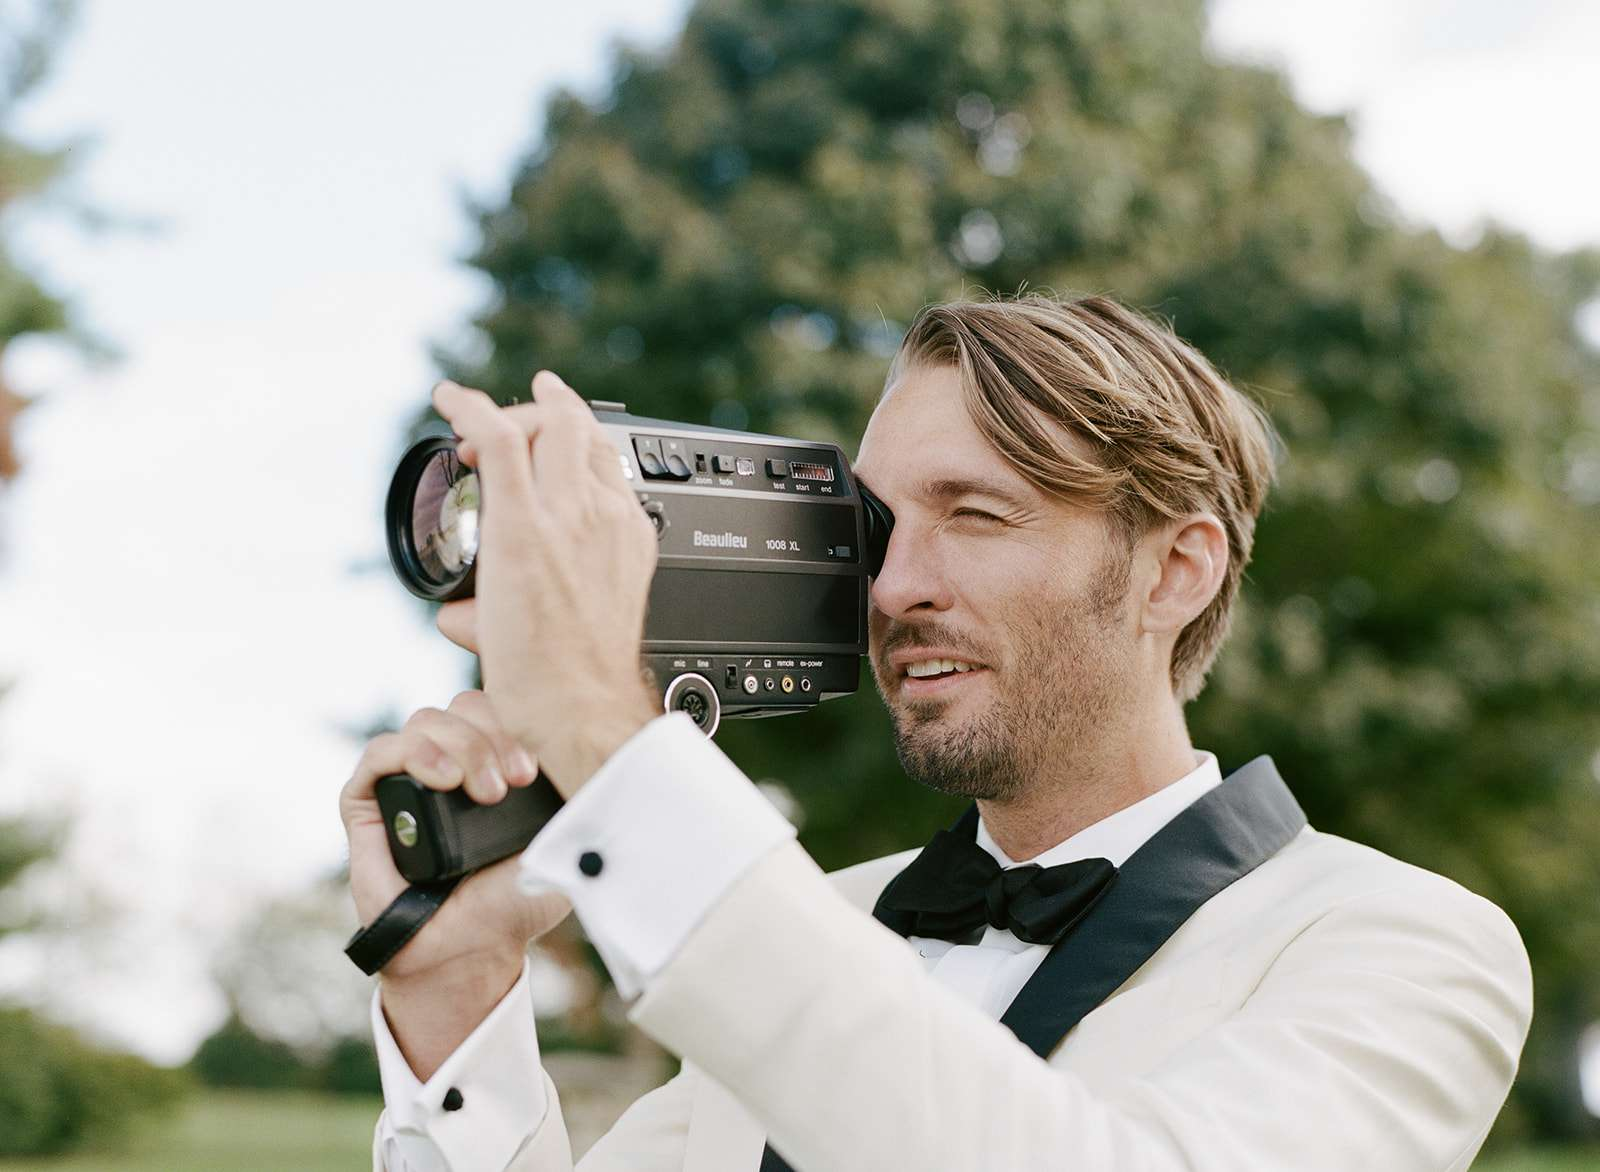 Groom with videocamera